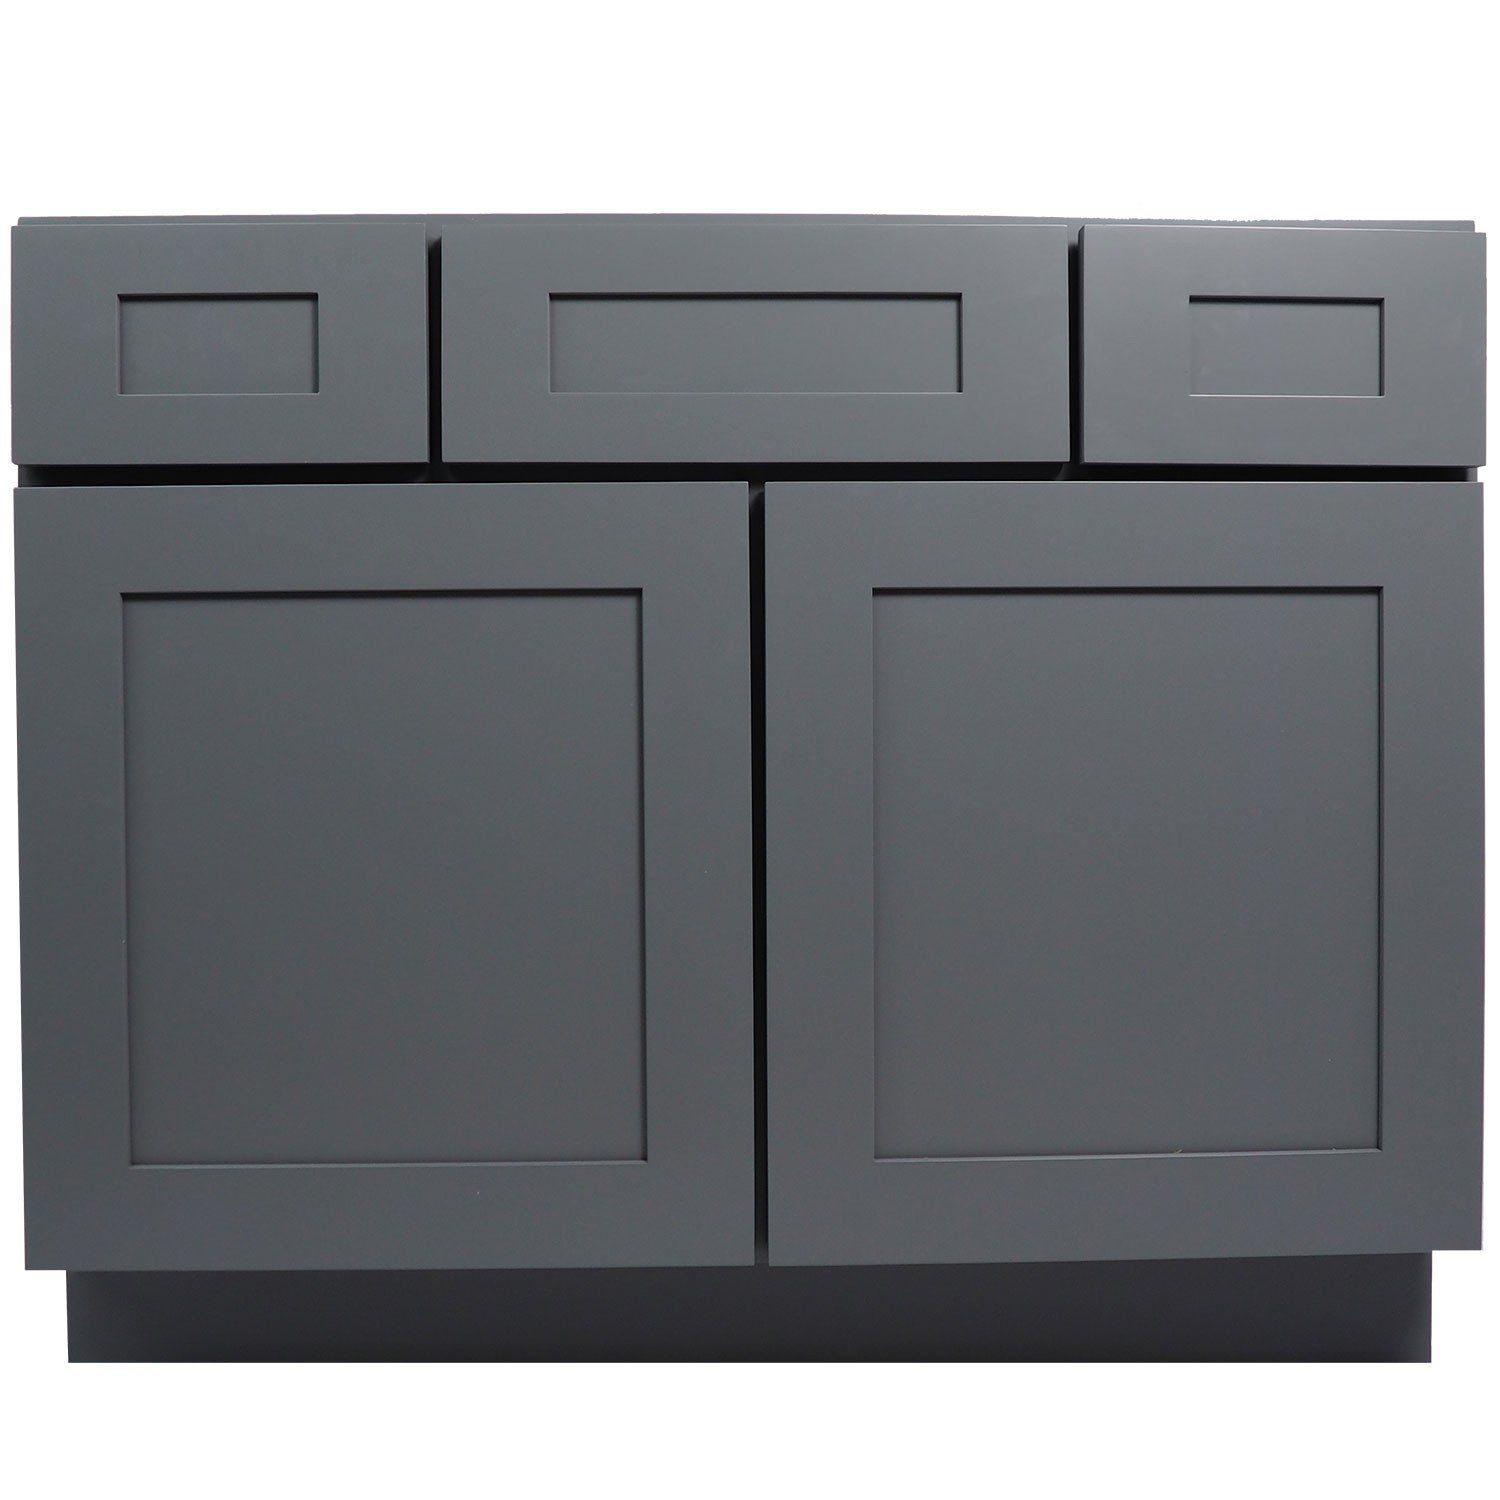 42 Inch Bathroom Vanity Cabinet In Solid Wood Shaker Gray With Soft Close Drawers 42 Inch Bathroom Vanity Bathroom Vanity Cabinets Single Sink Bathroom Vanity